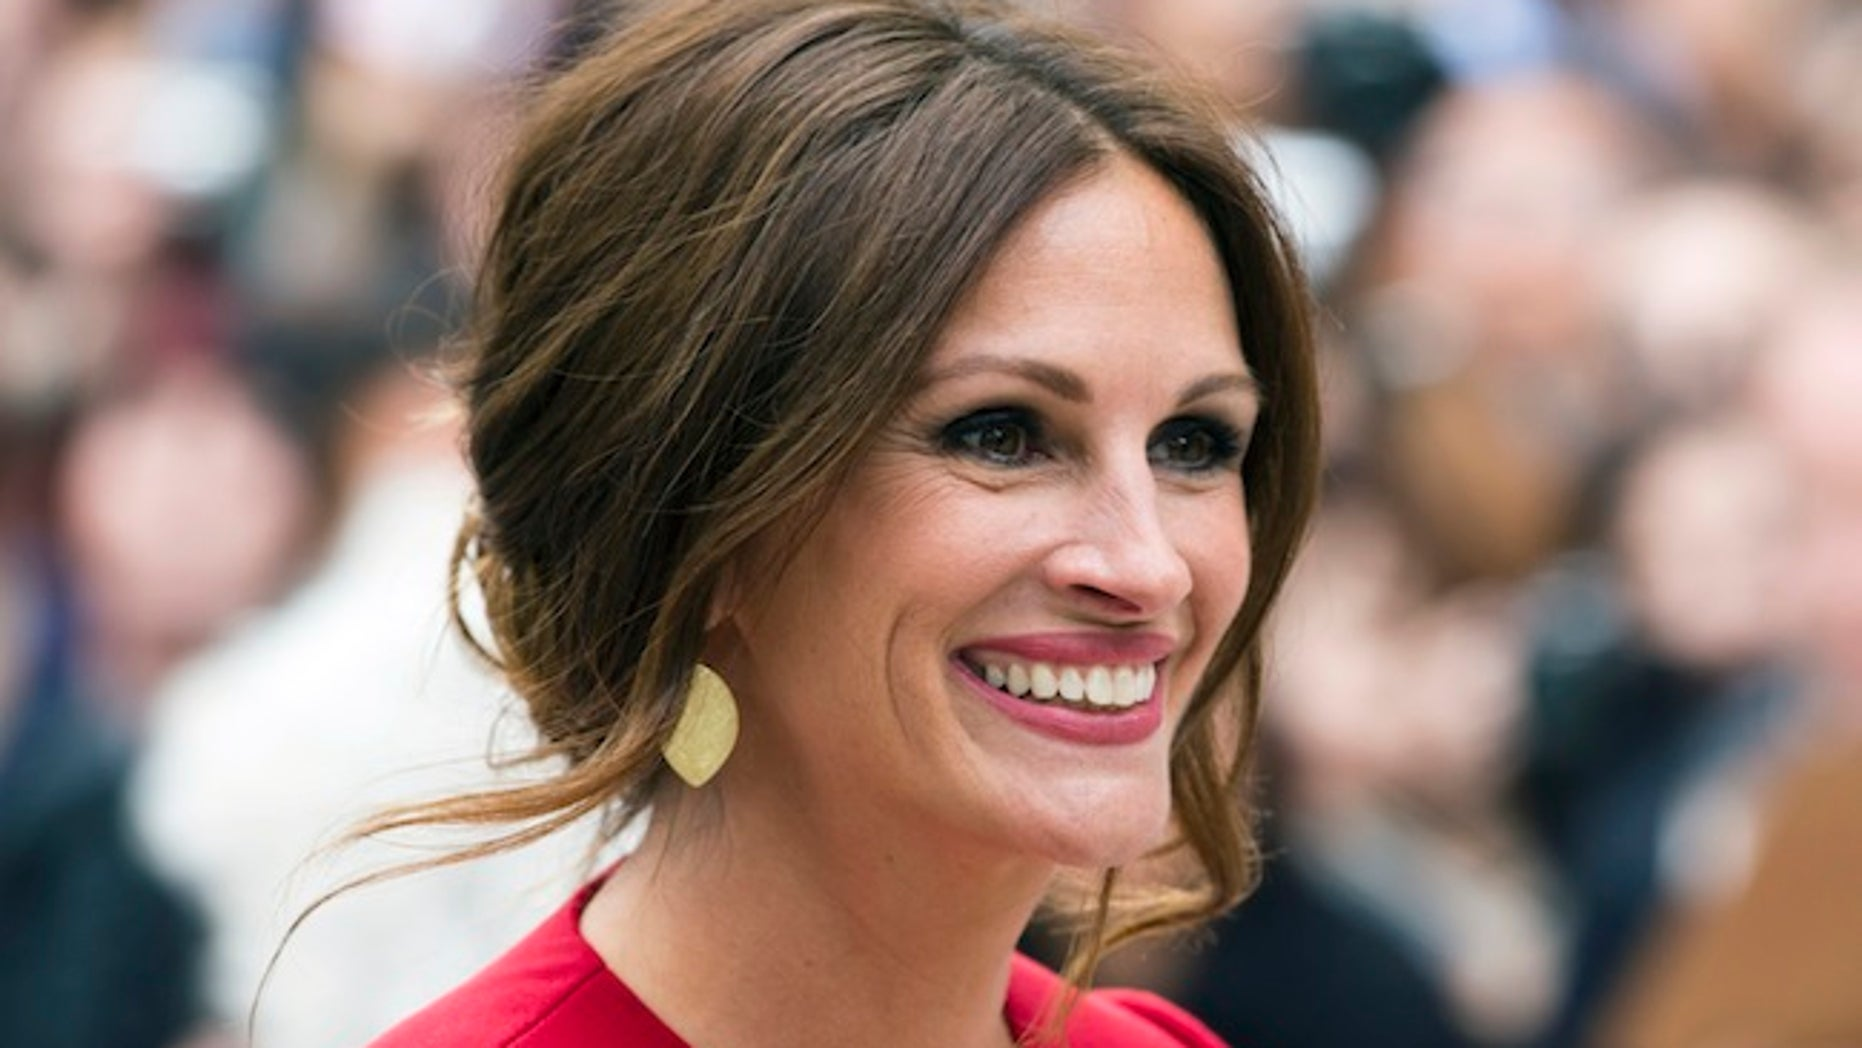 """Cast member Julia Roberts arrives for the """"August: Osage County"""" screening at the 38th Toronto International Film Festival in Toronto, September 9, 2013.    REUTERS/Mark Blinch (CANADA - Tags: ENTERTAINMENT) - RTX13EVR"""